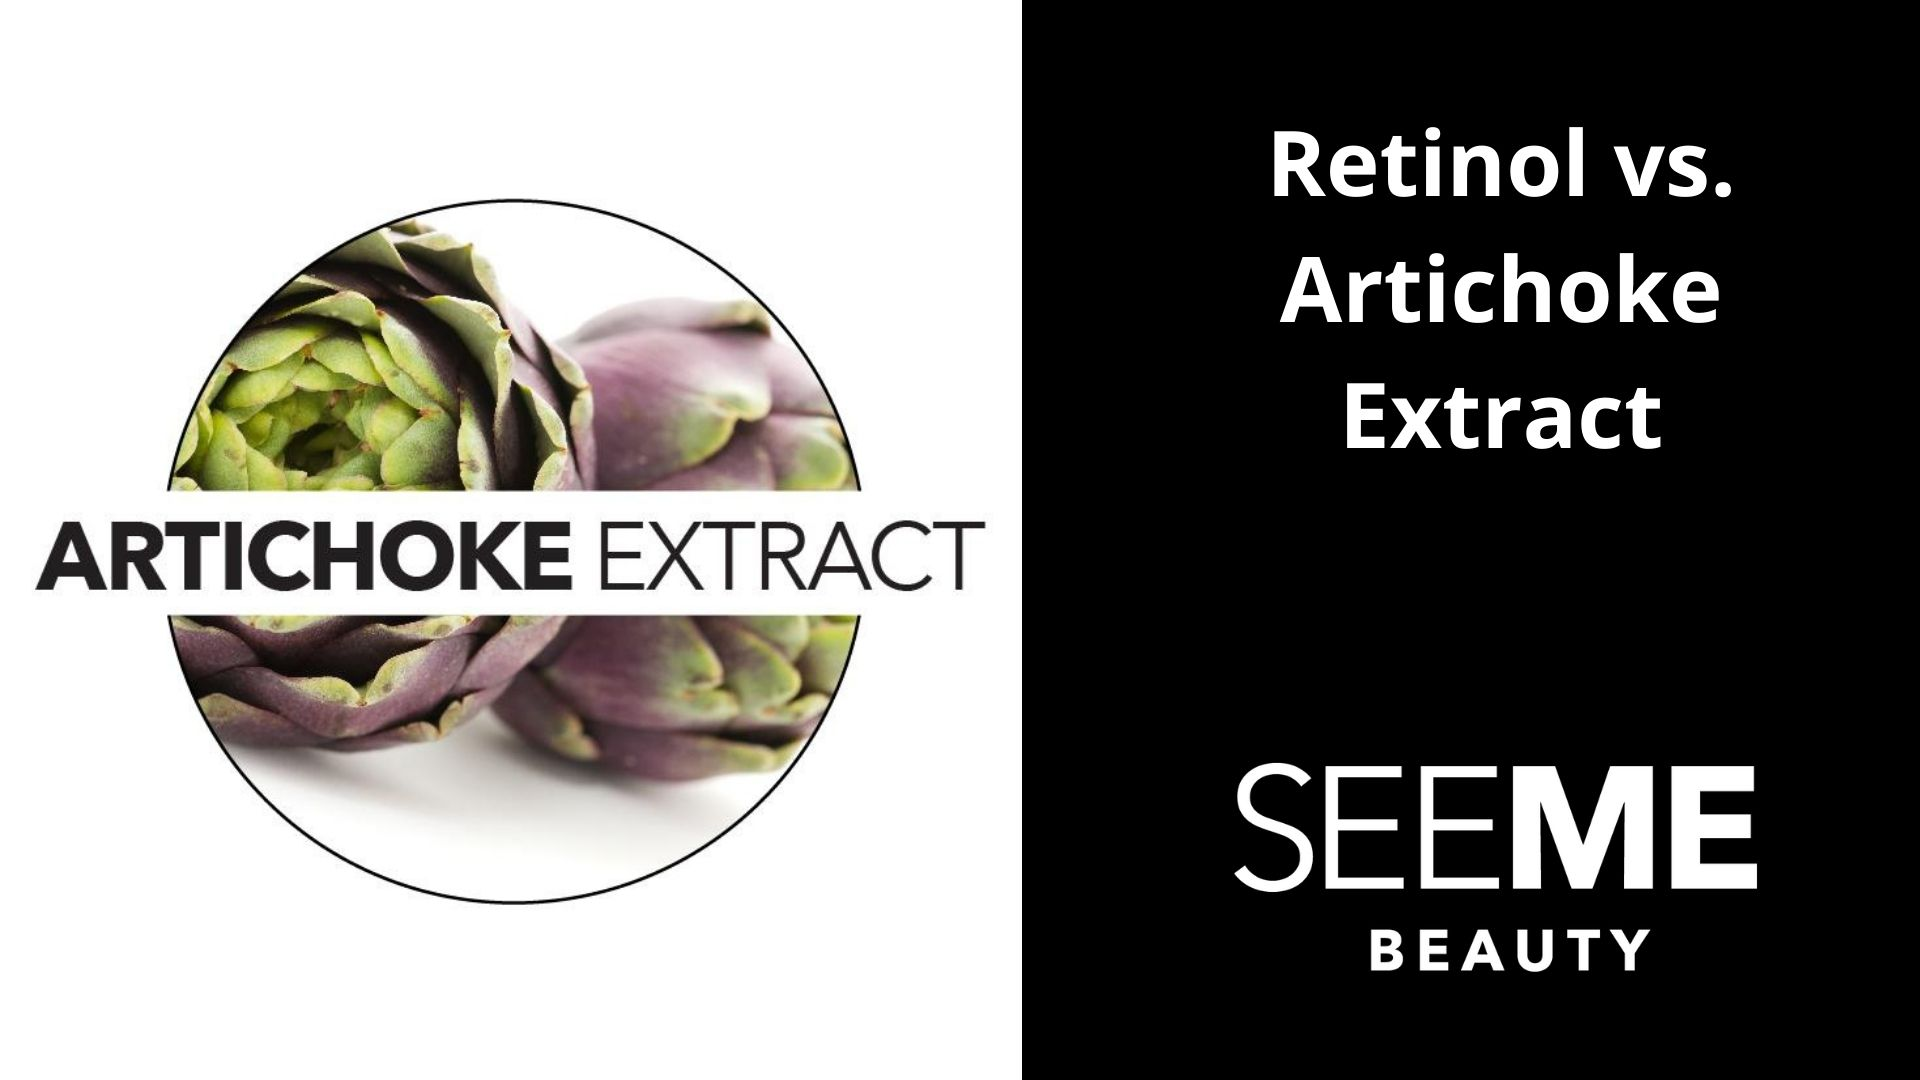 Retinol vs. Artichoke Extract with an artichoke picture and the words Artichoke extract across